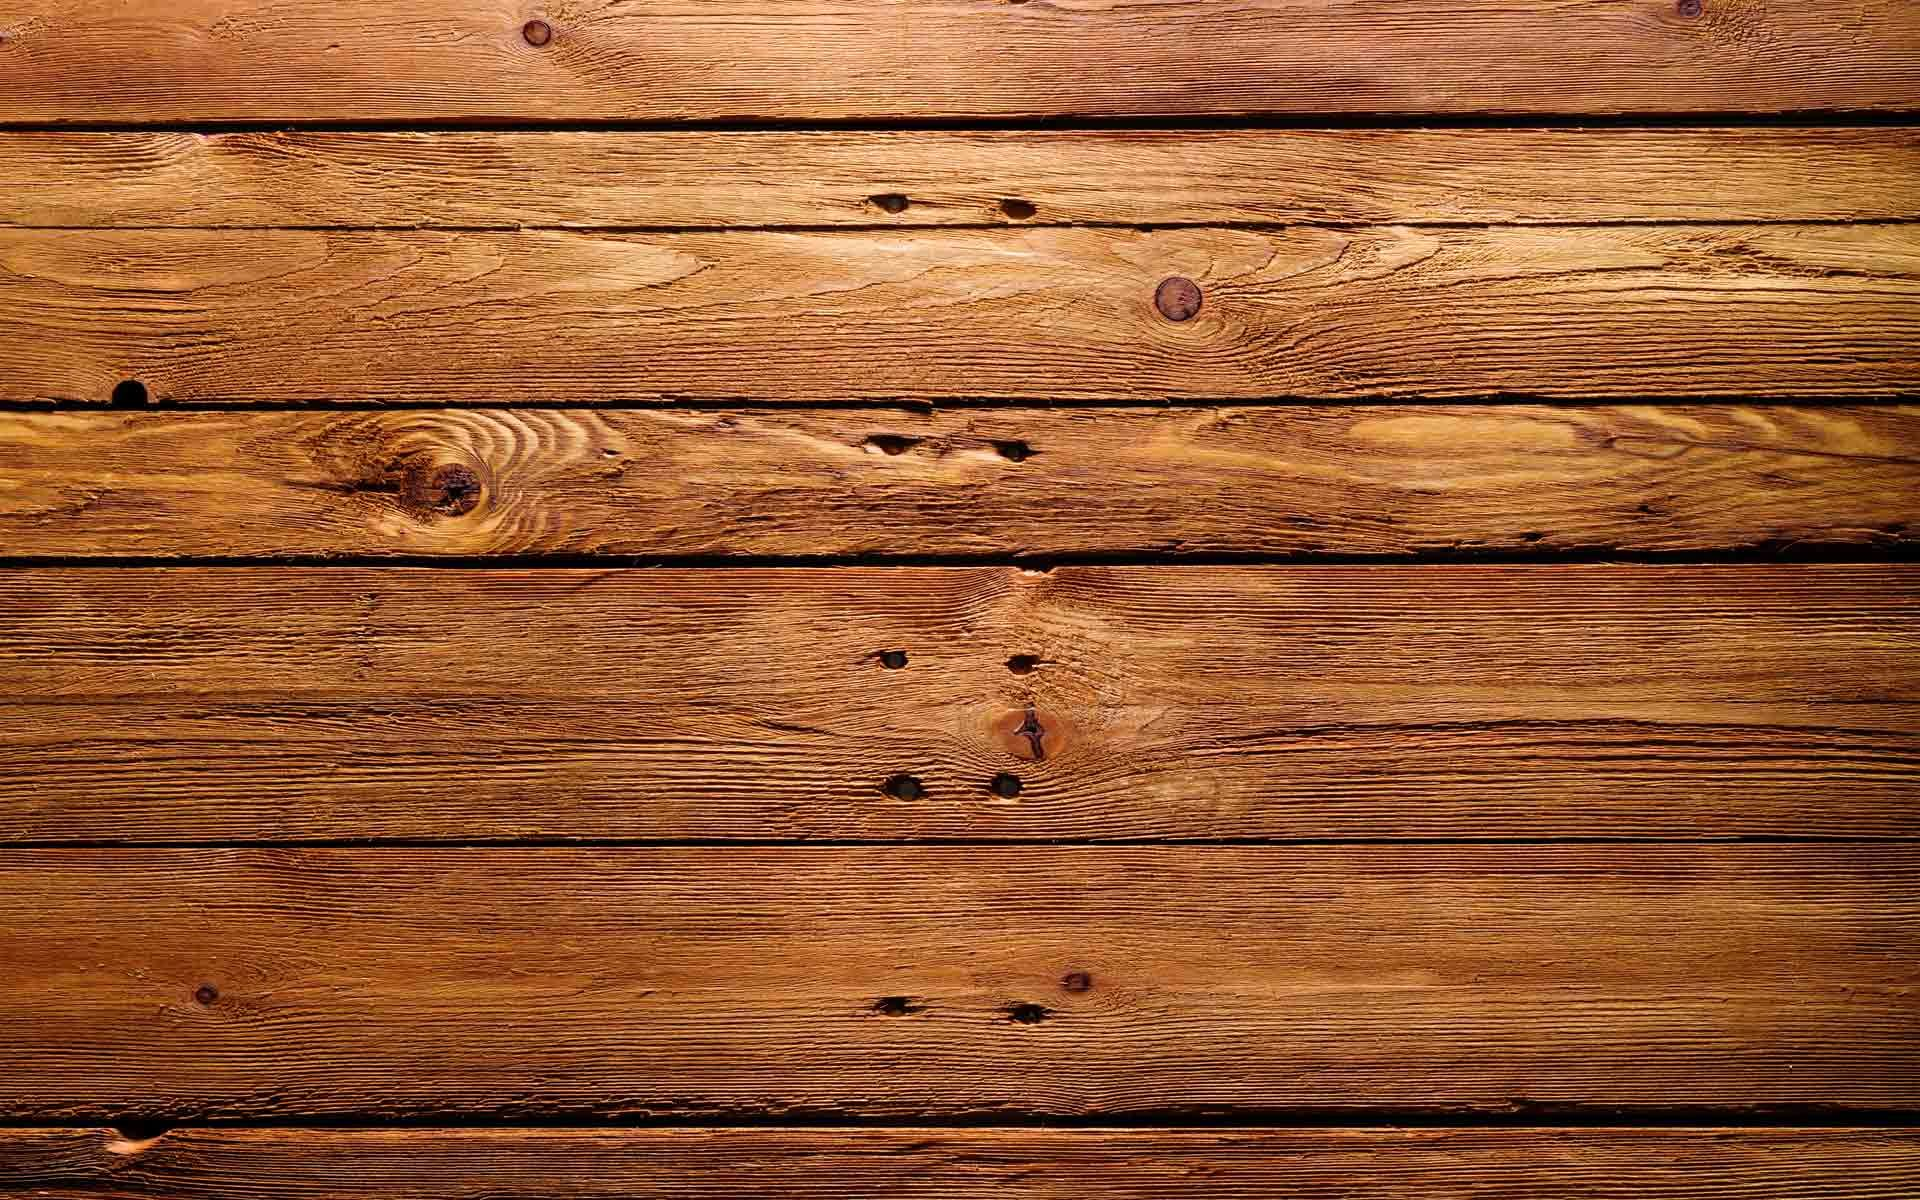 Wooden Desktop Wood Wallpaper Textures Pinterest Wood Wallpaper